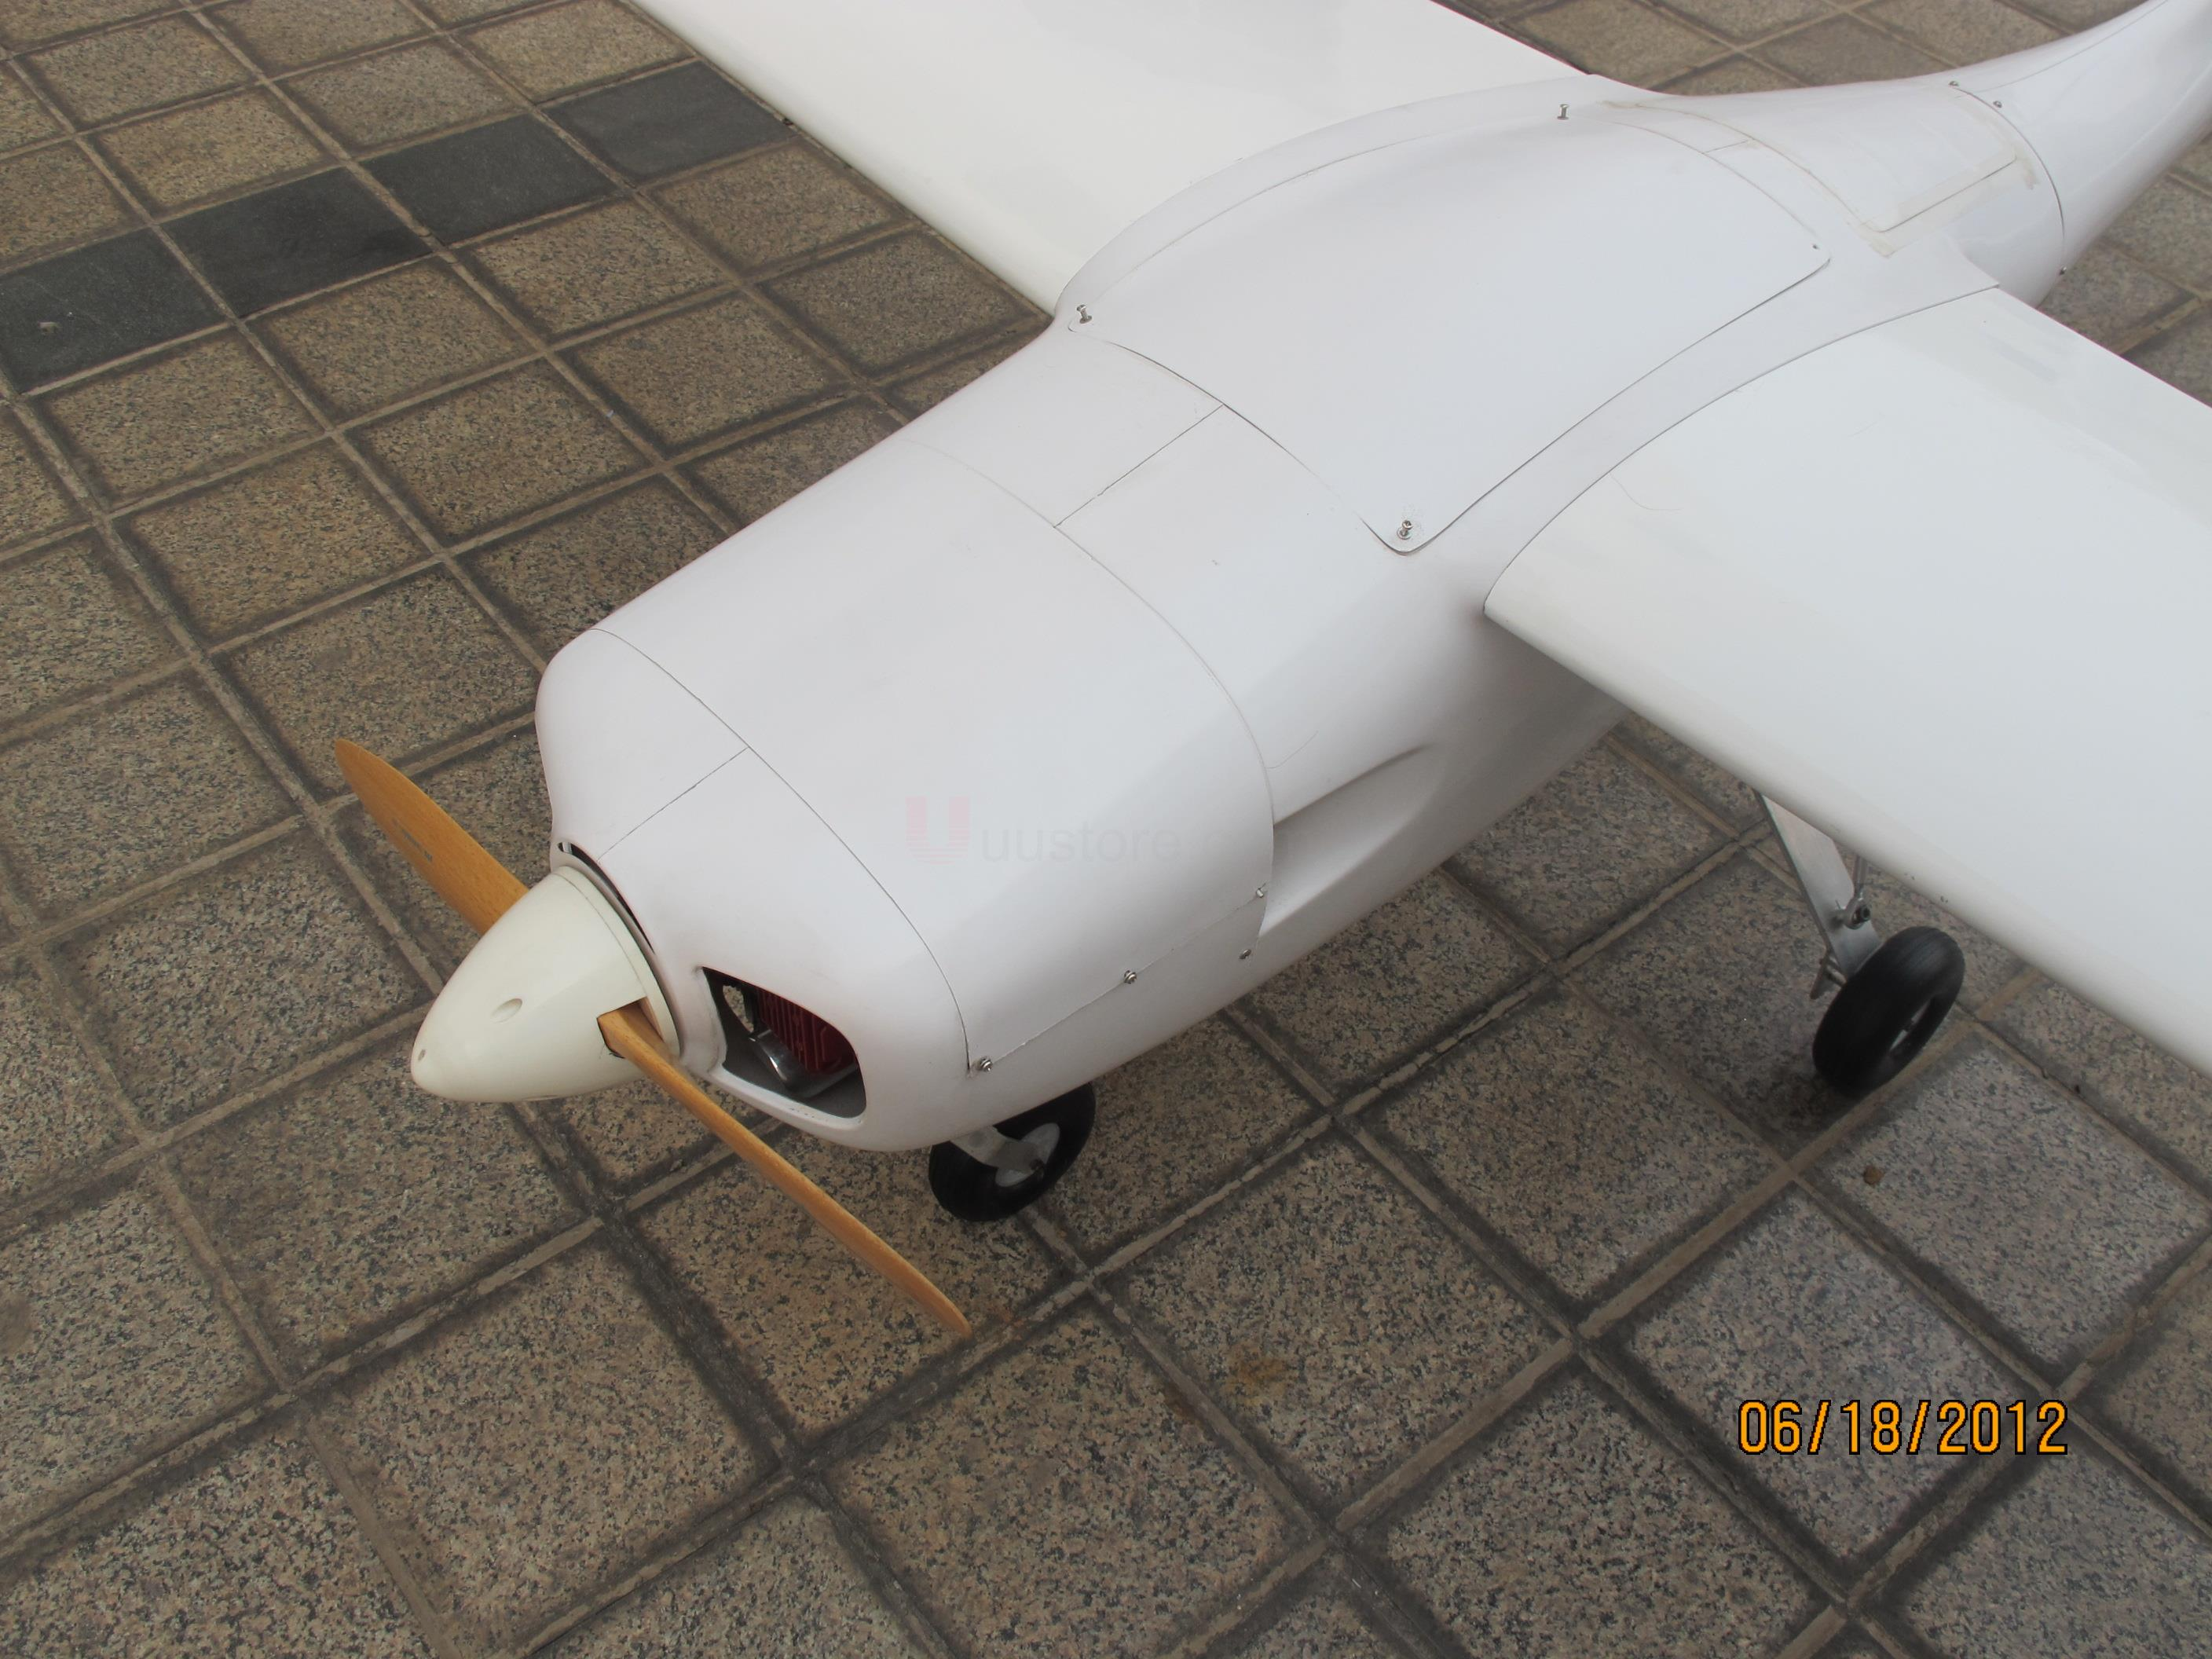 FPVOK UAV Gas Powered 2.6m Wingspan Requirement 50-80cc engine Modle Airplane